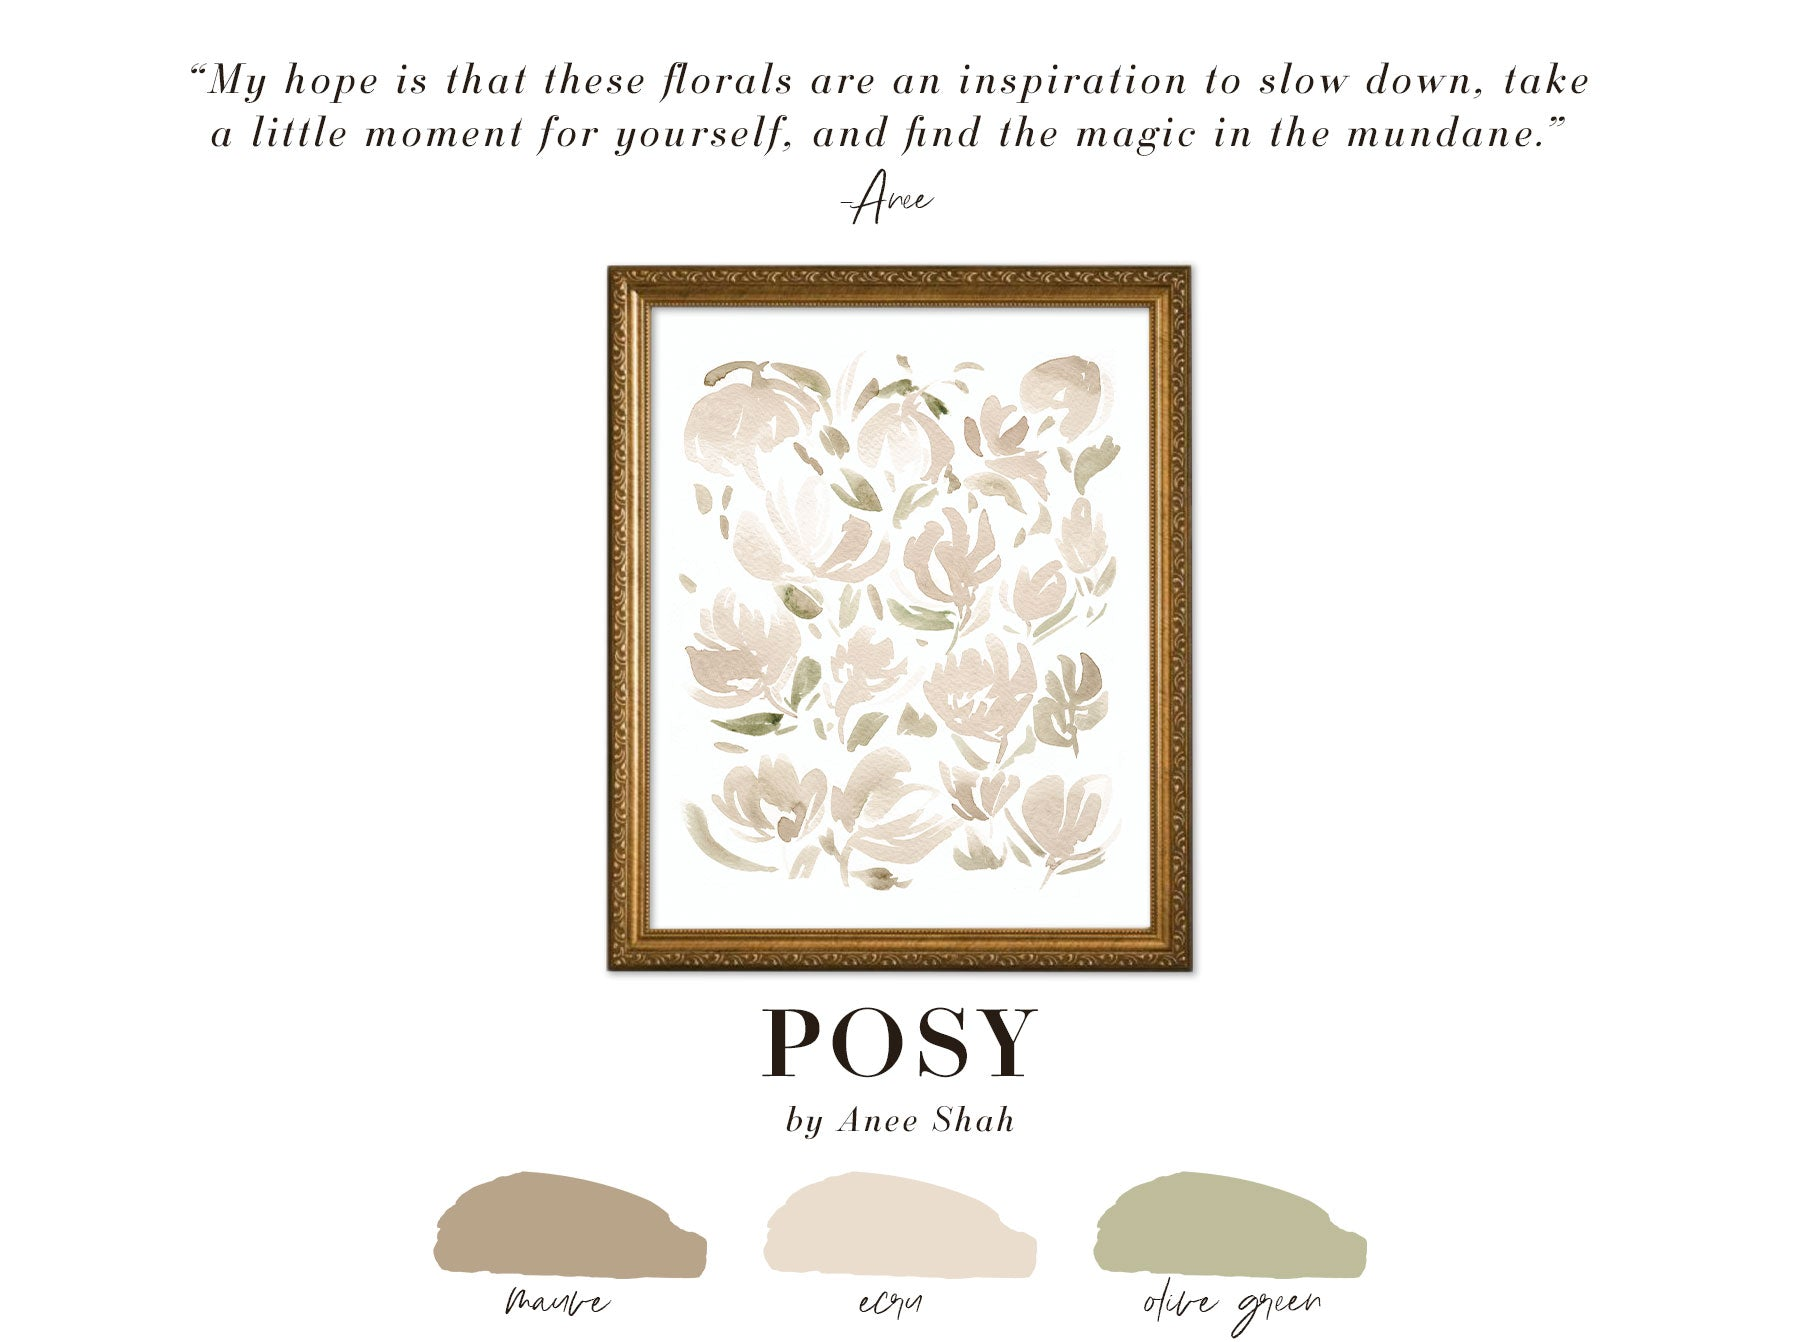 Shop POSY by Anee Shah